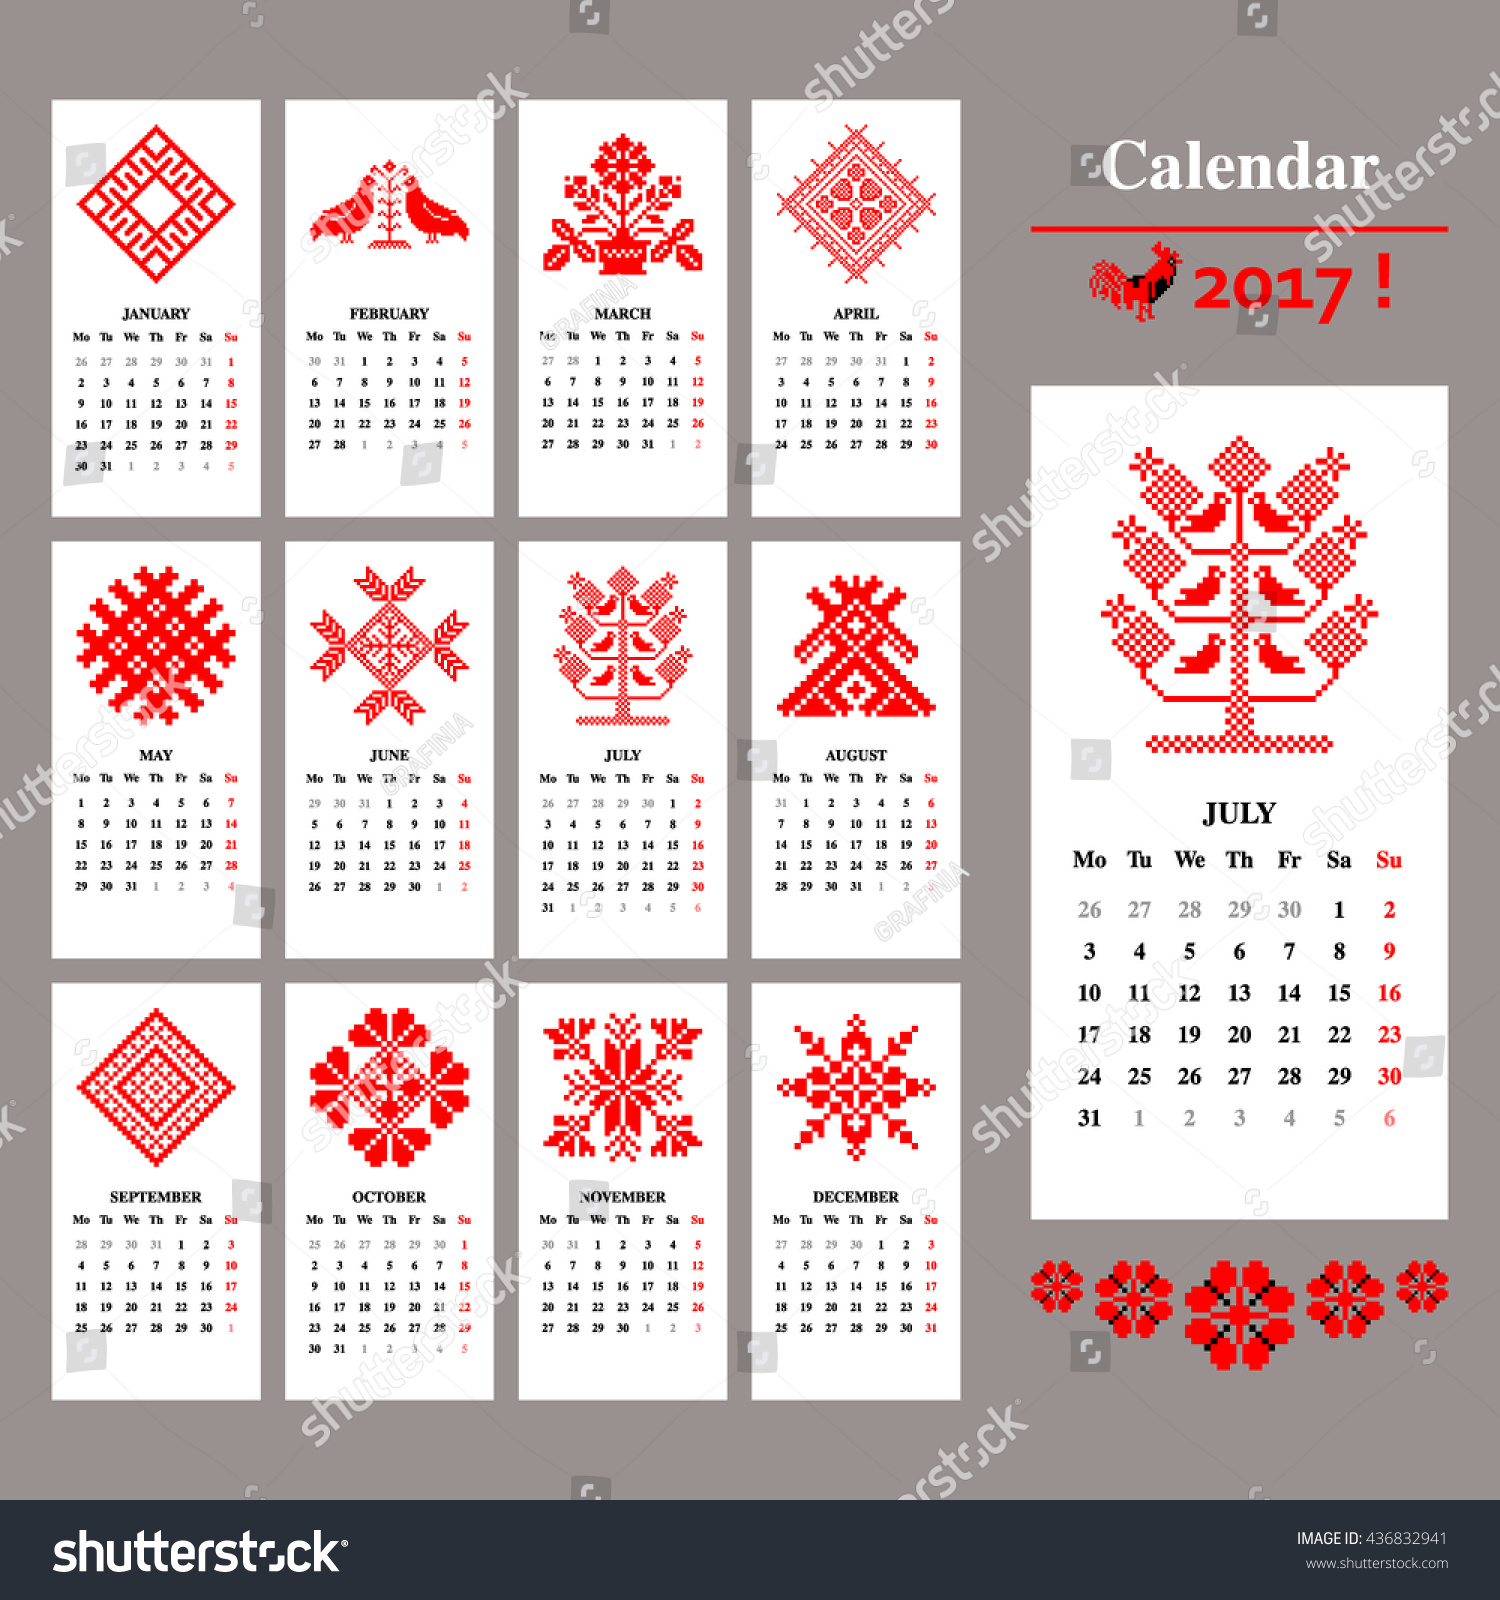 Calendar Design Pattern : Calendar design pattern rooster print